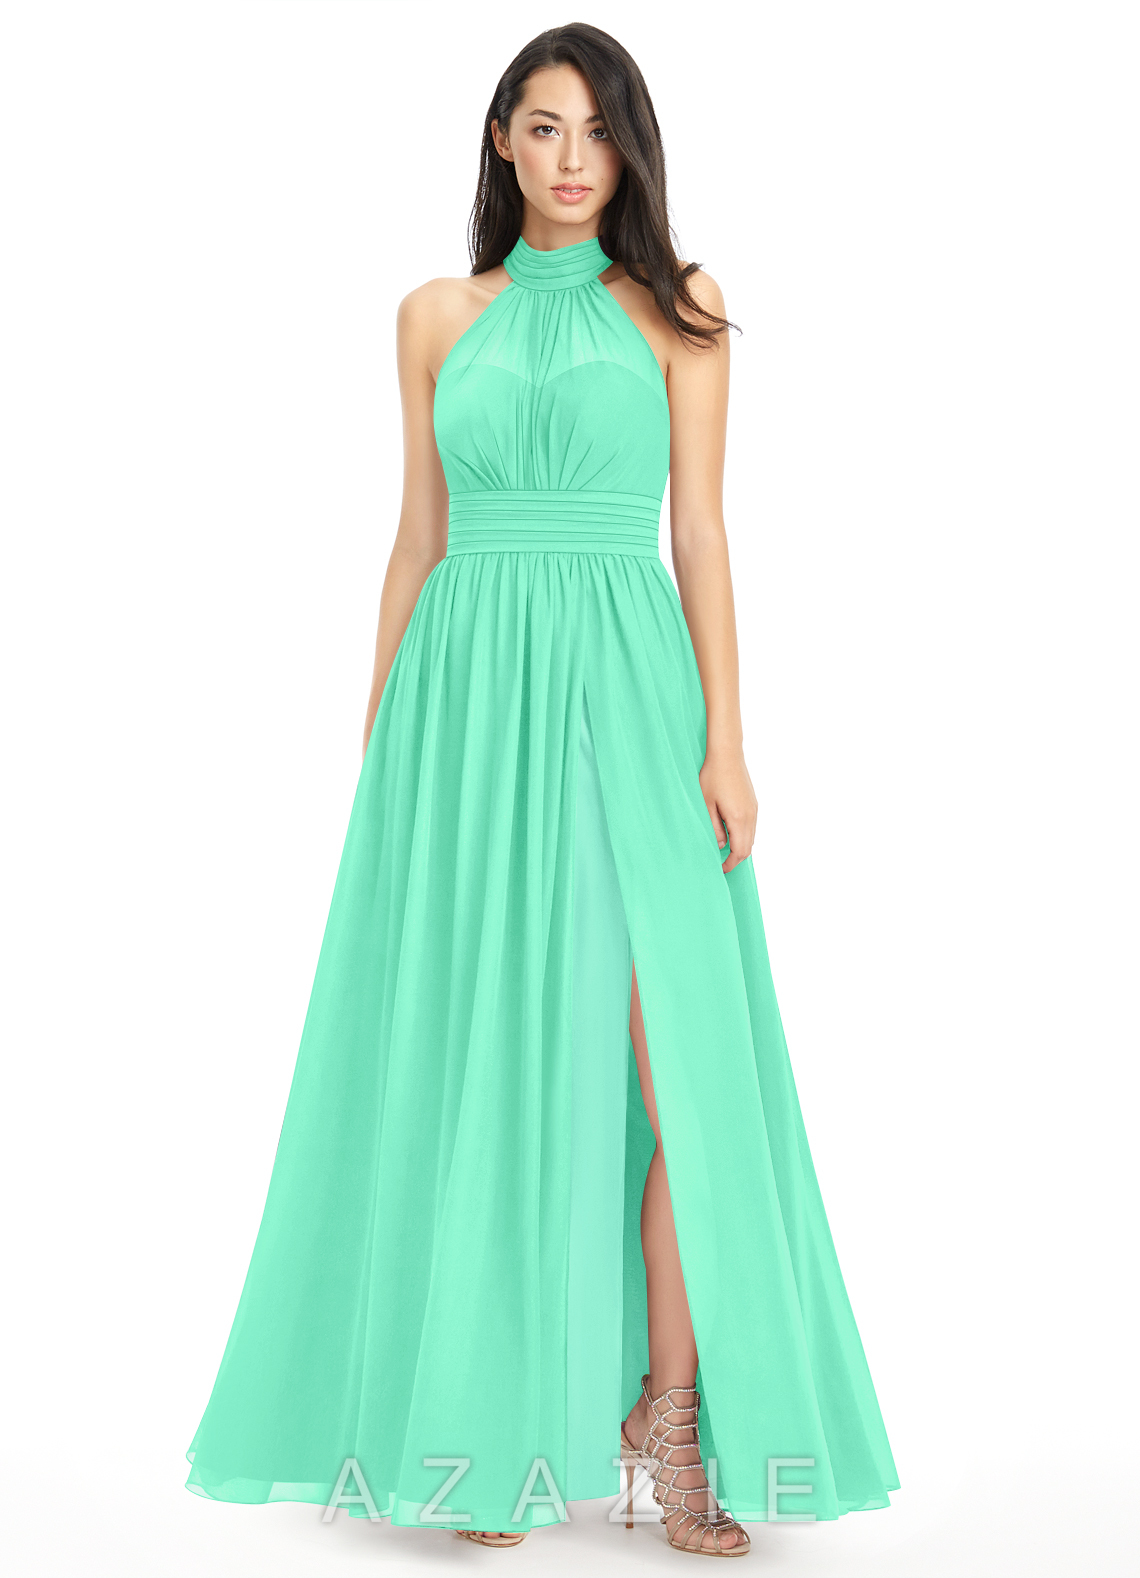 Azazie iman bridesmaid dress azazie color turquoise ombrellifo Image collections